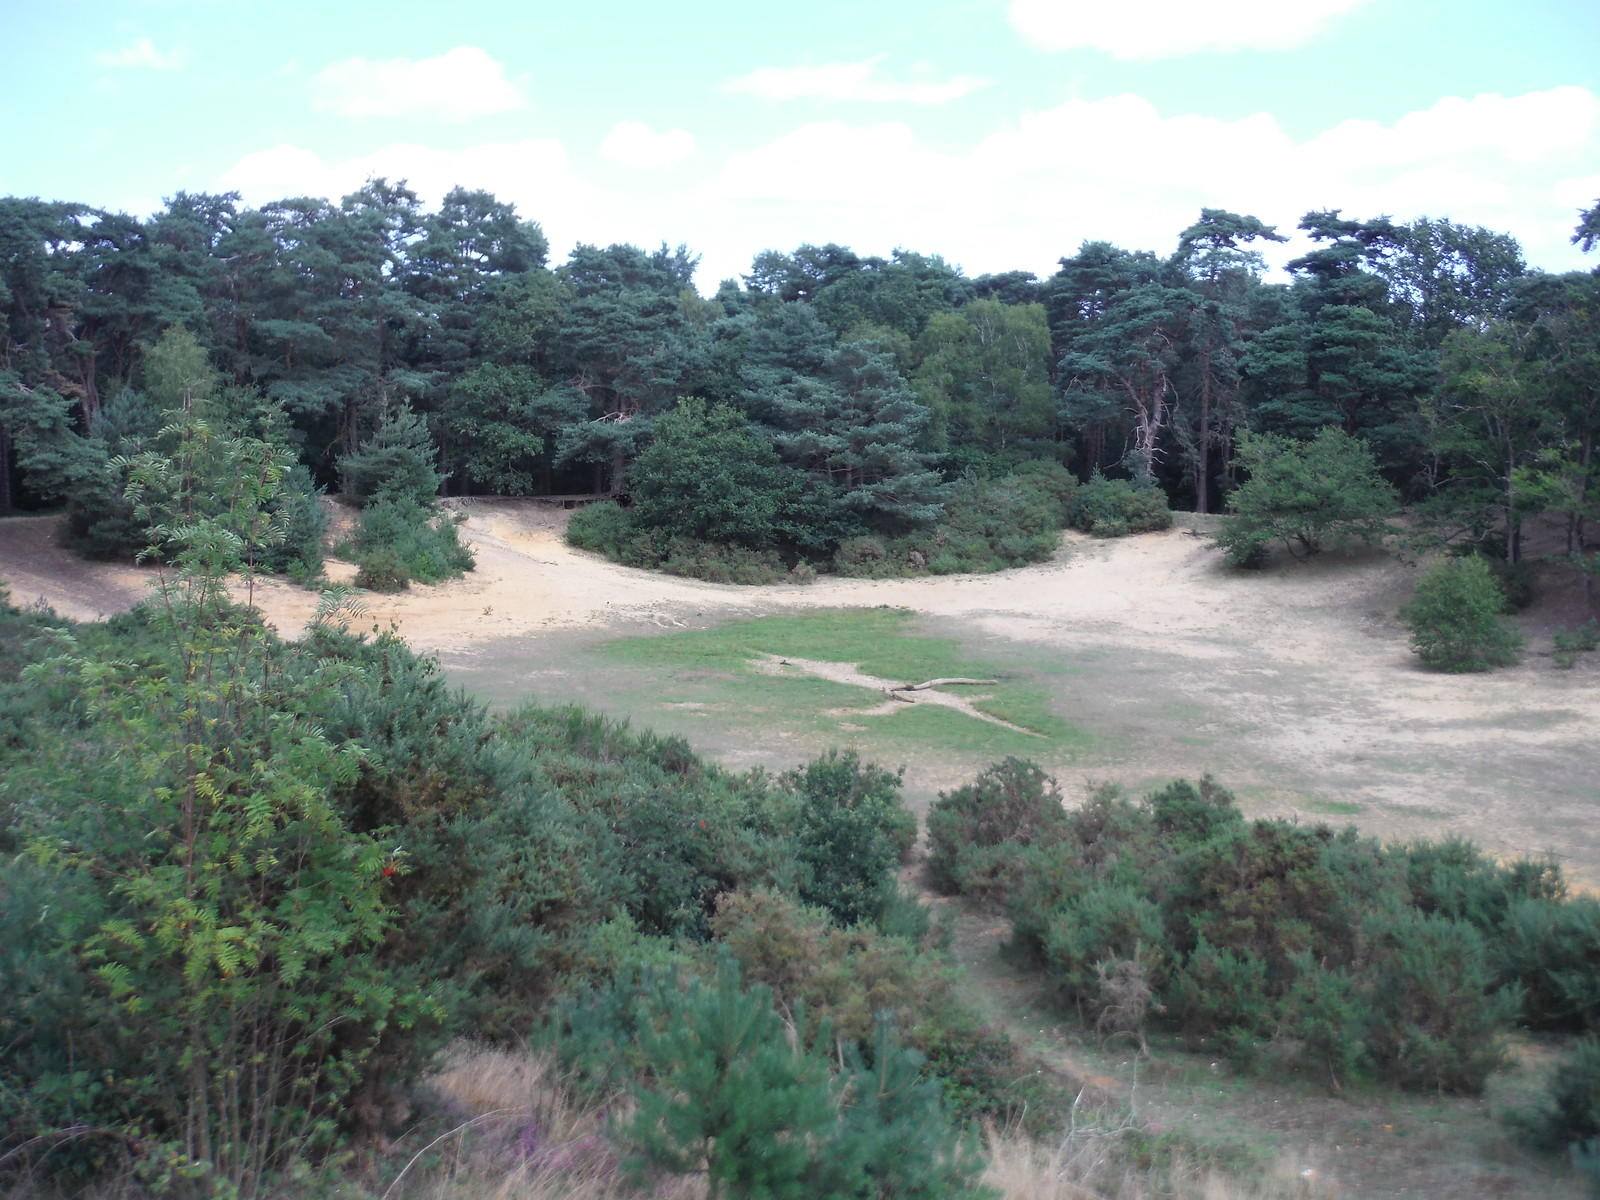 Sandpit, Oxshott Heath SWC Short Walk 17 - Oxshott Heath, Esher and West End Commons